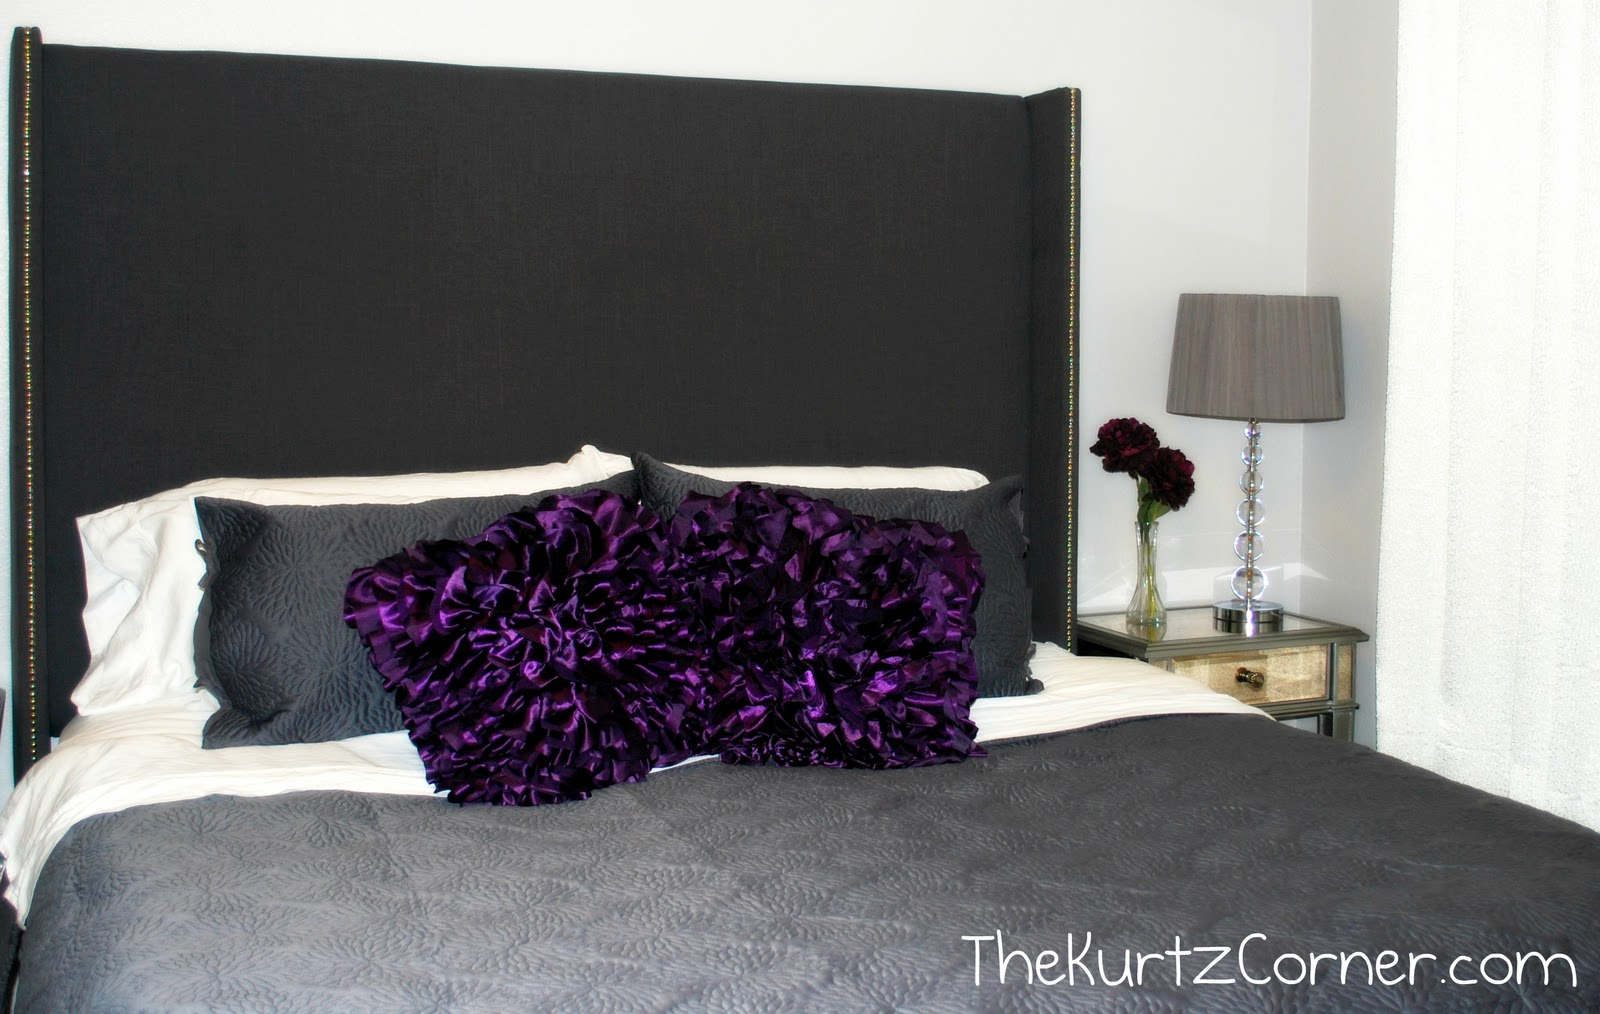 upholstered headboards in black matched with gray bedding plus nightstand and table standing lamp for bedroom decor ideas